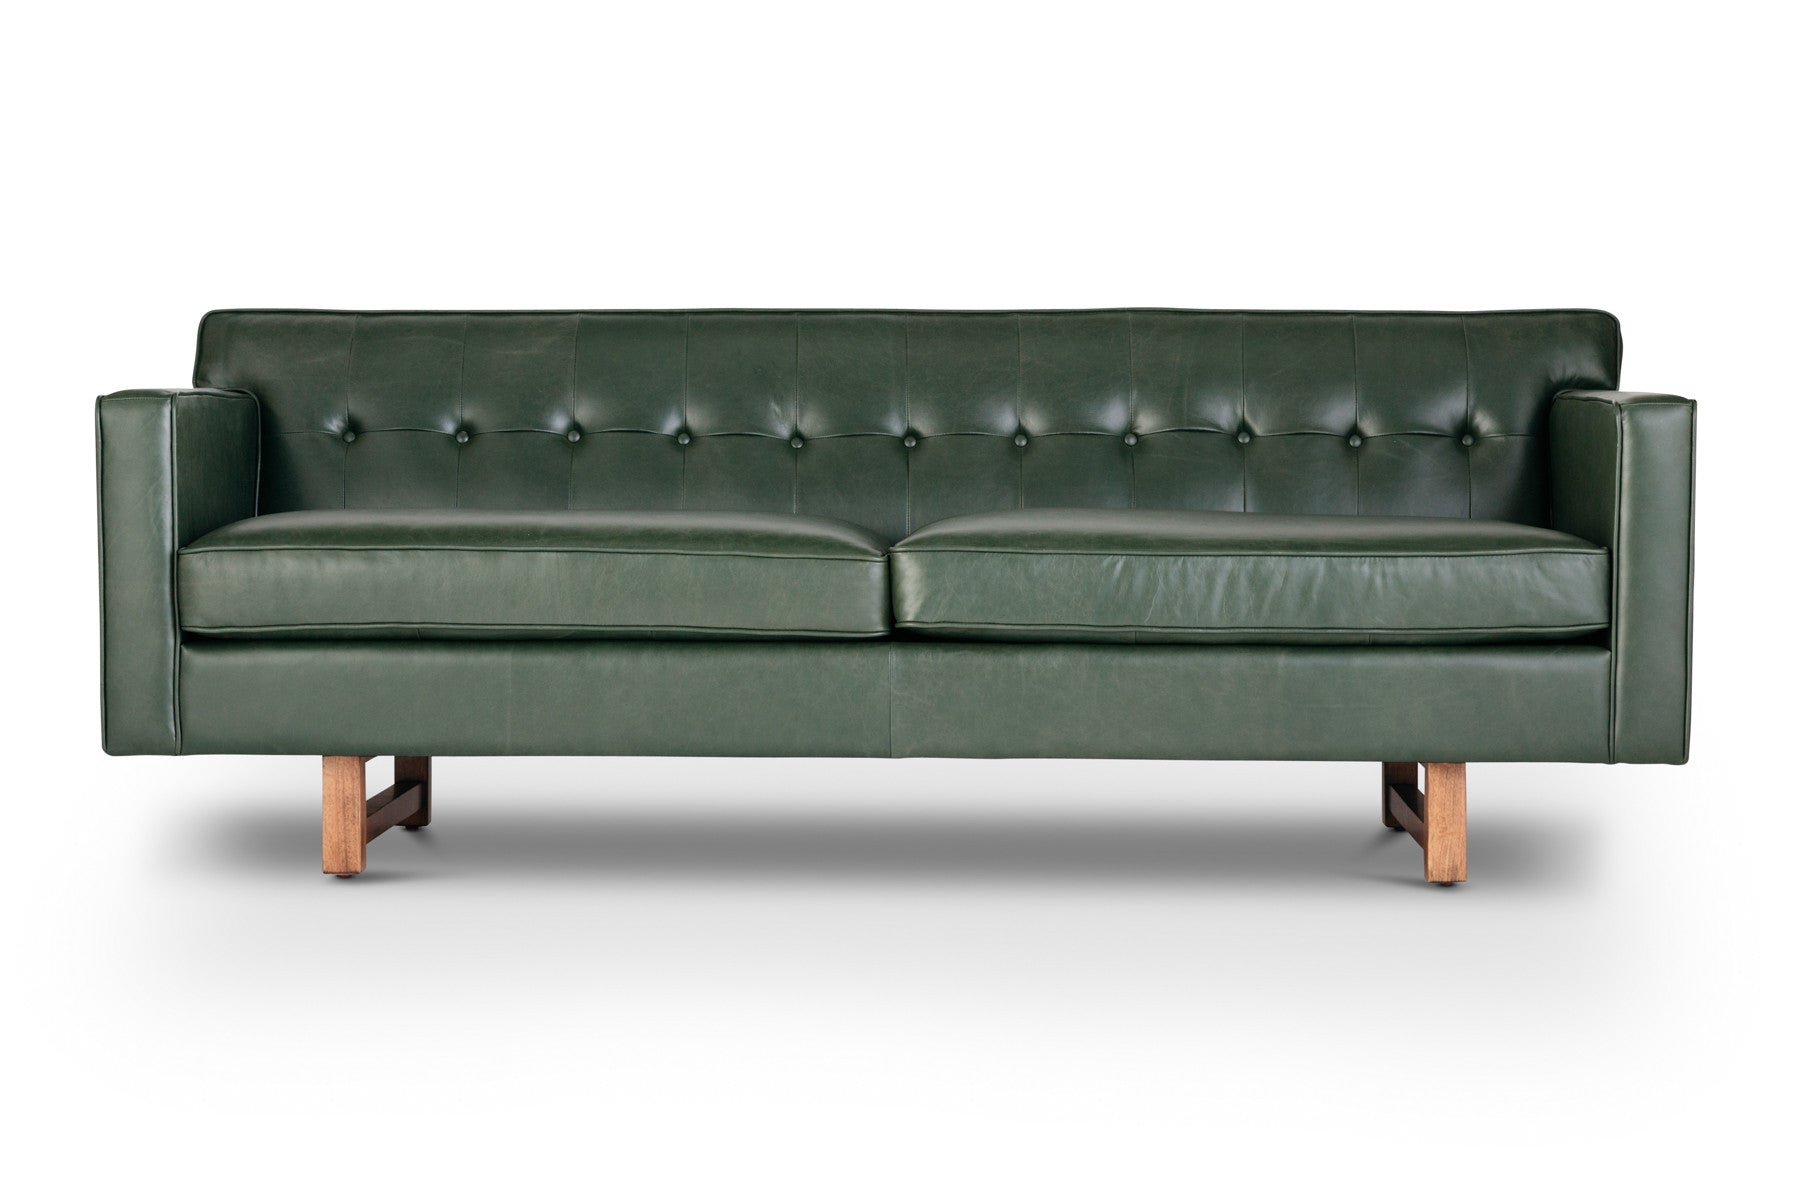 Gabriella Metro Moss Green Italian Leather Sofa Jovili